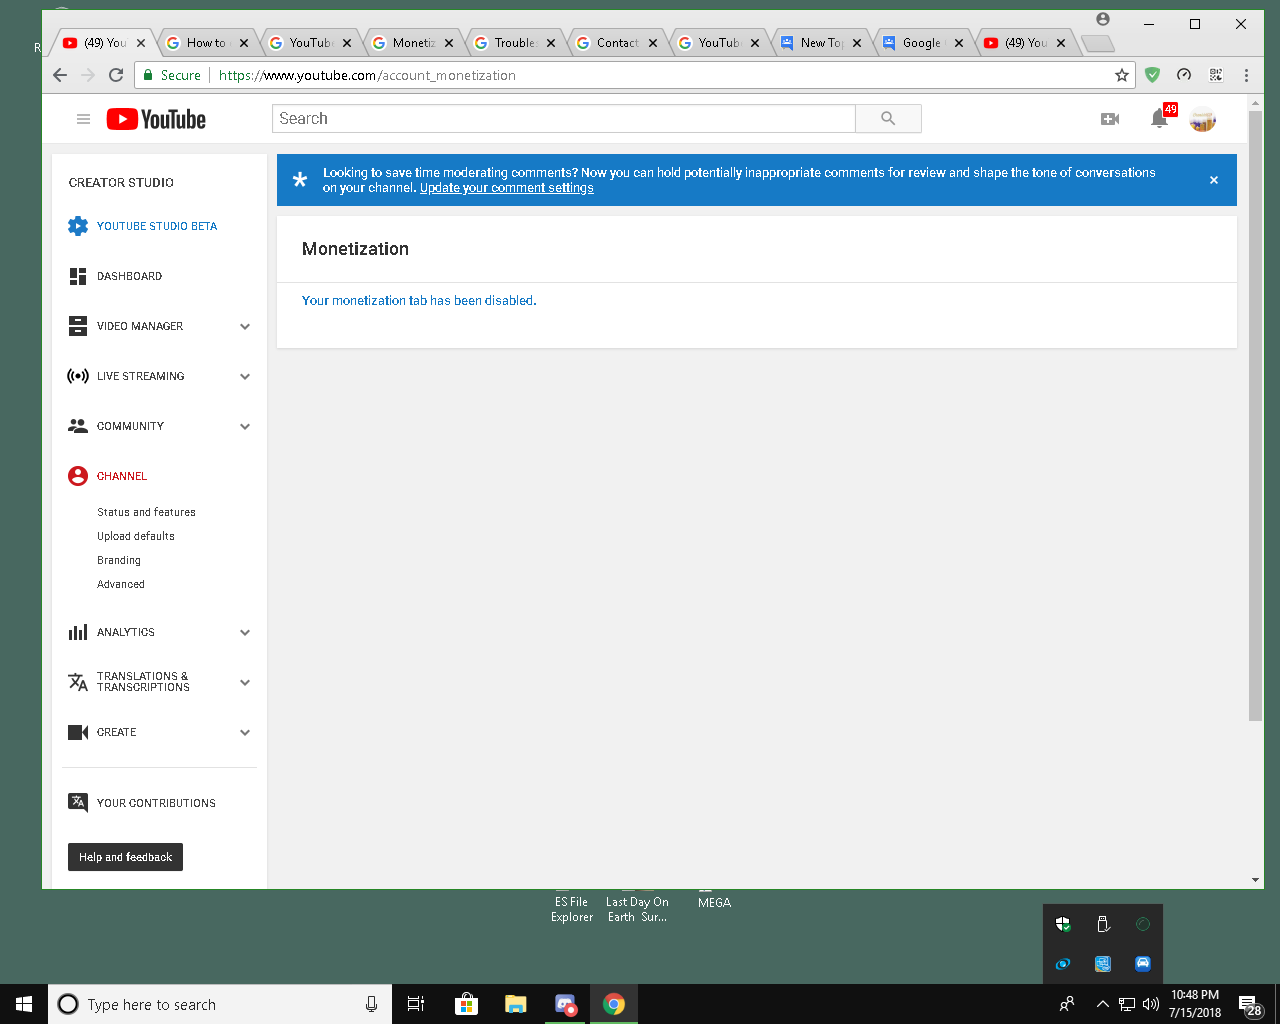 Eligible But Got Nothing Hundreds Of >> So My Monetization Has Been Off For Quite A While Now And I